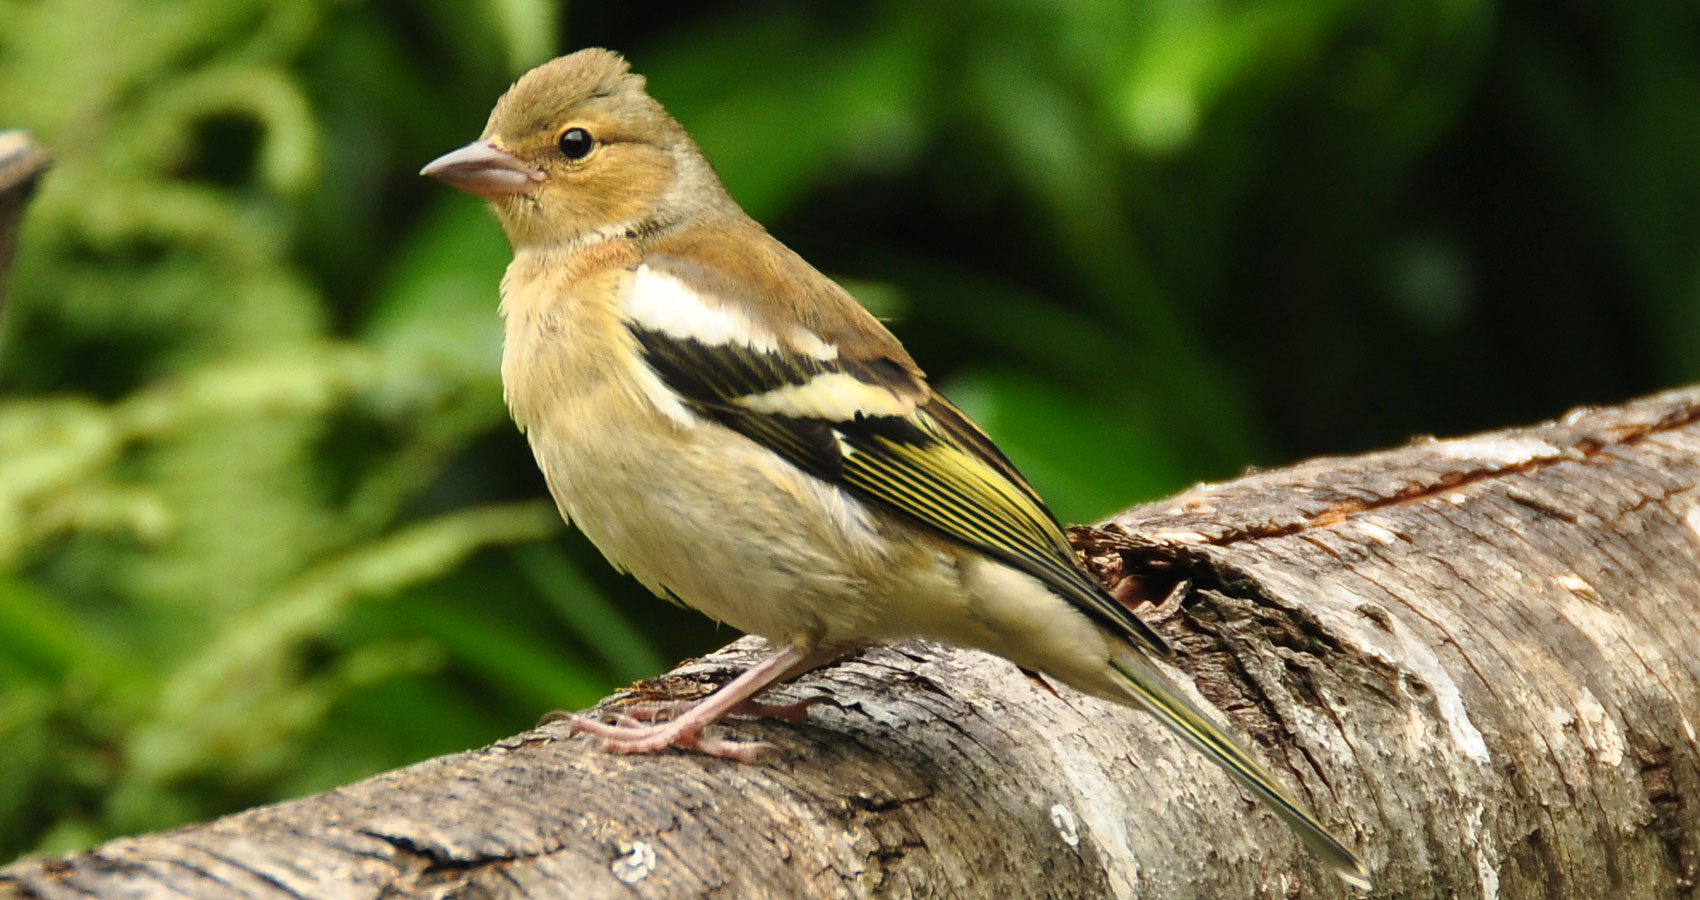 The Chaffinch written by Gordana Kokich at Spillwords.com